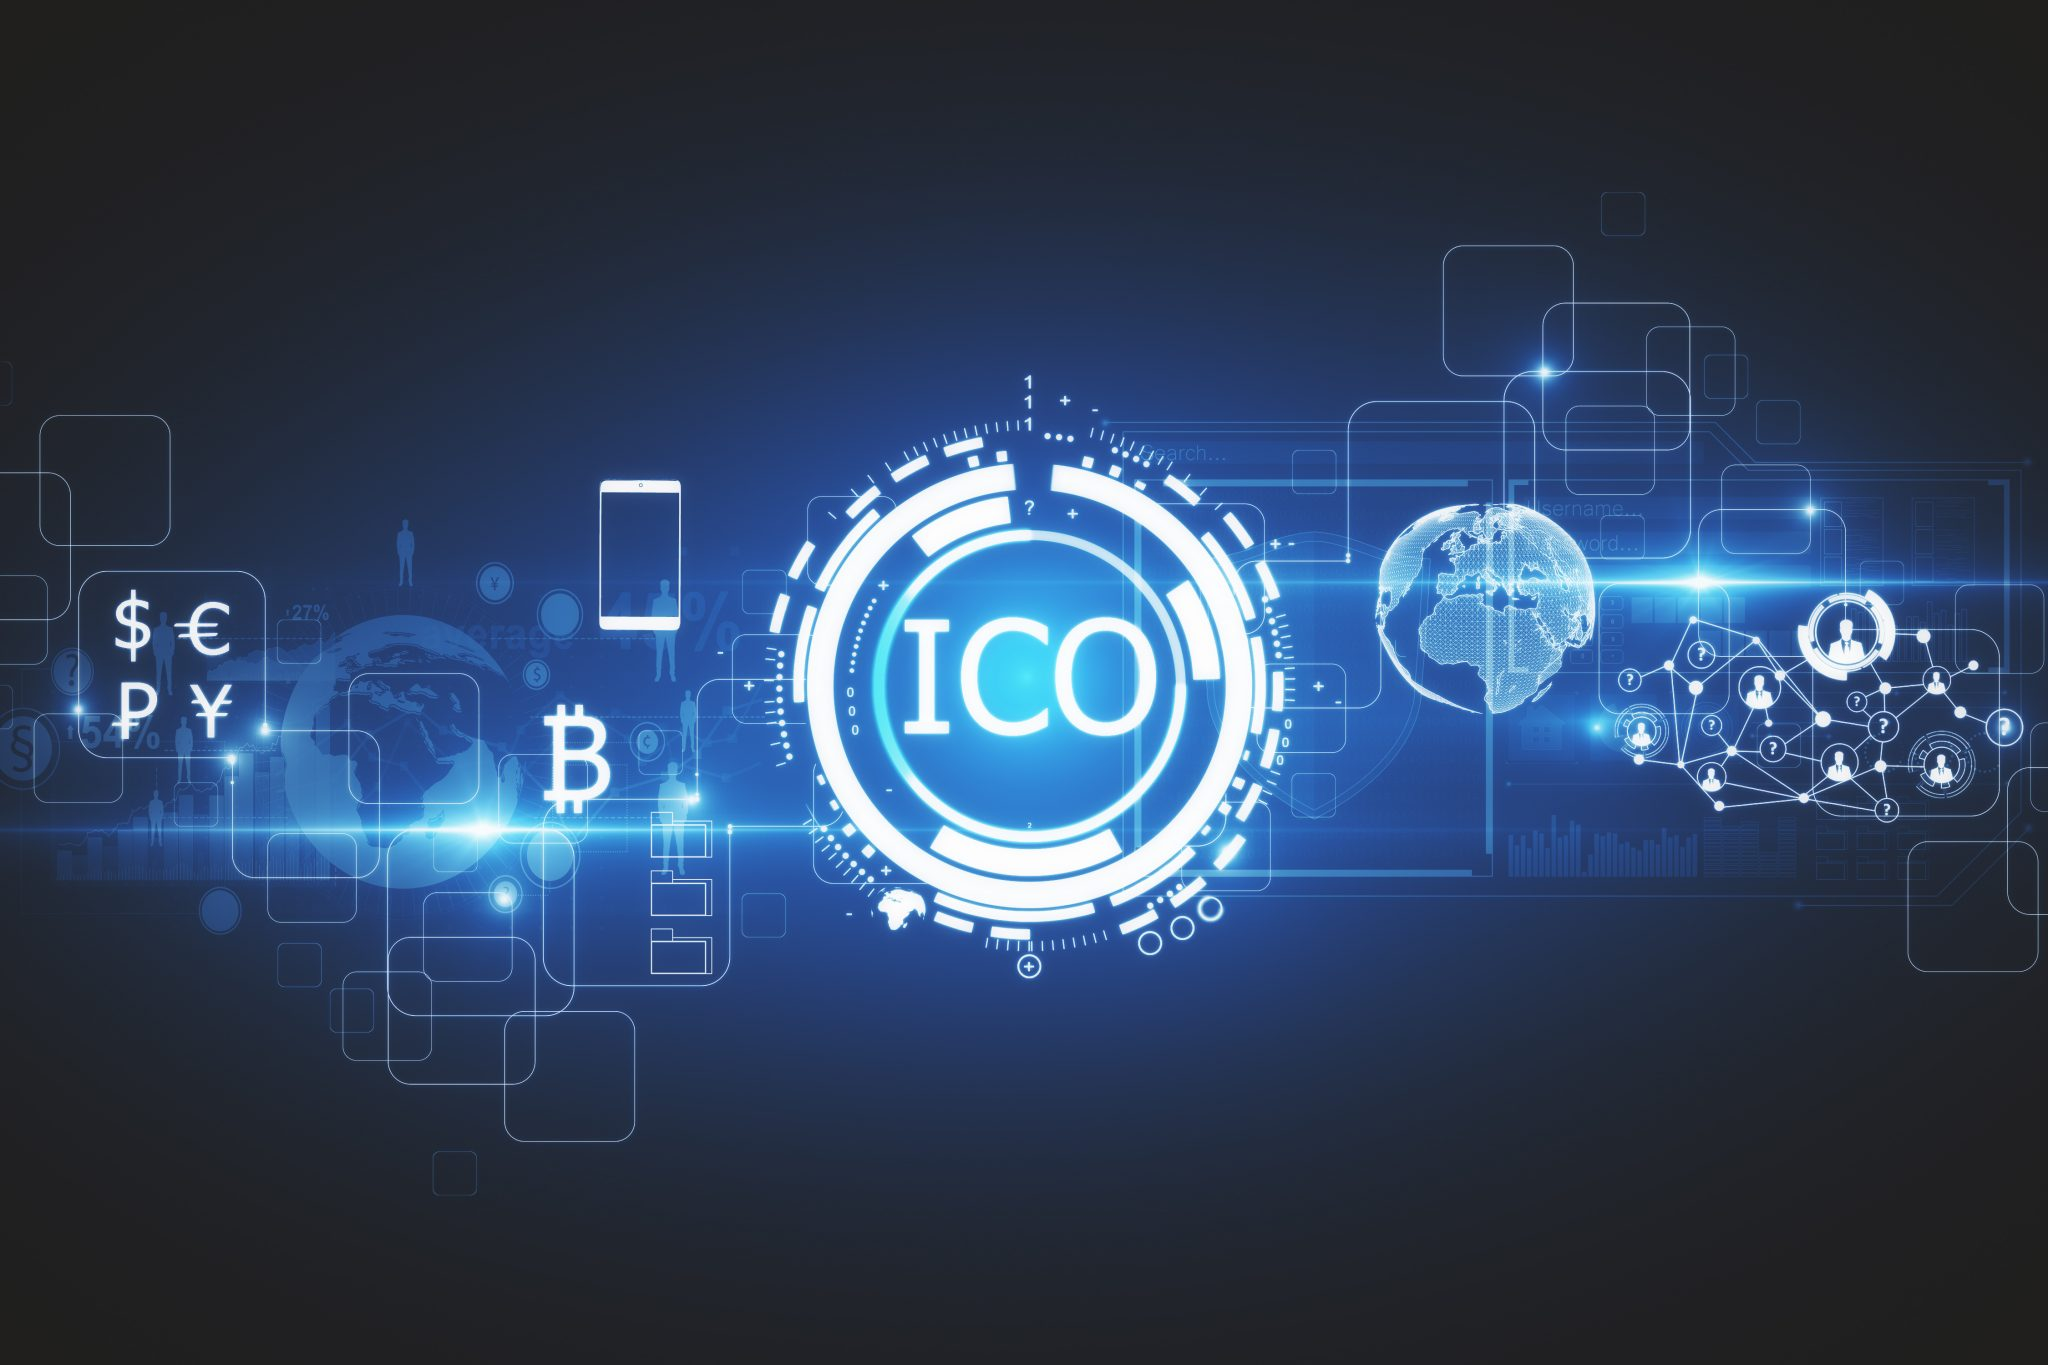 Blue ICO icon